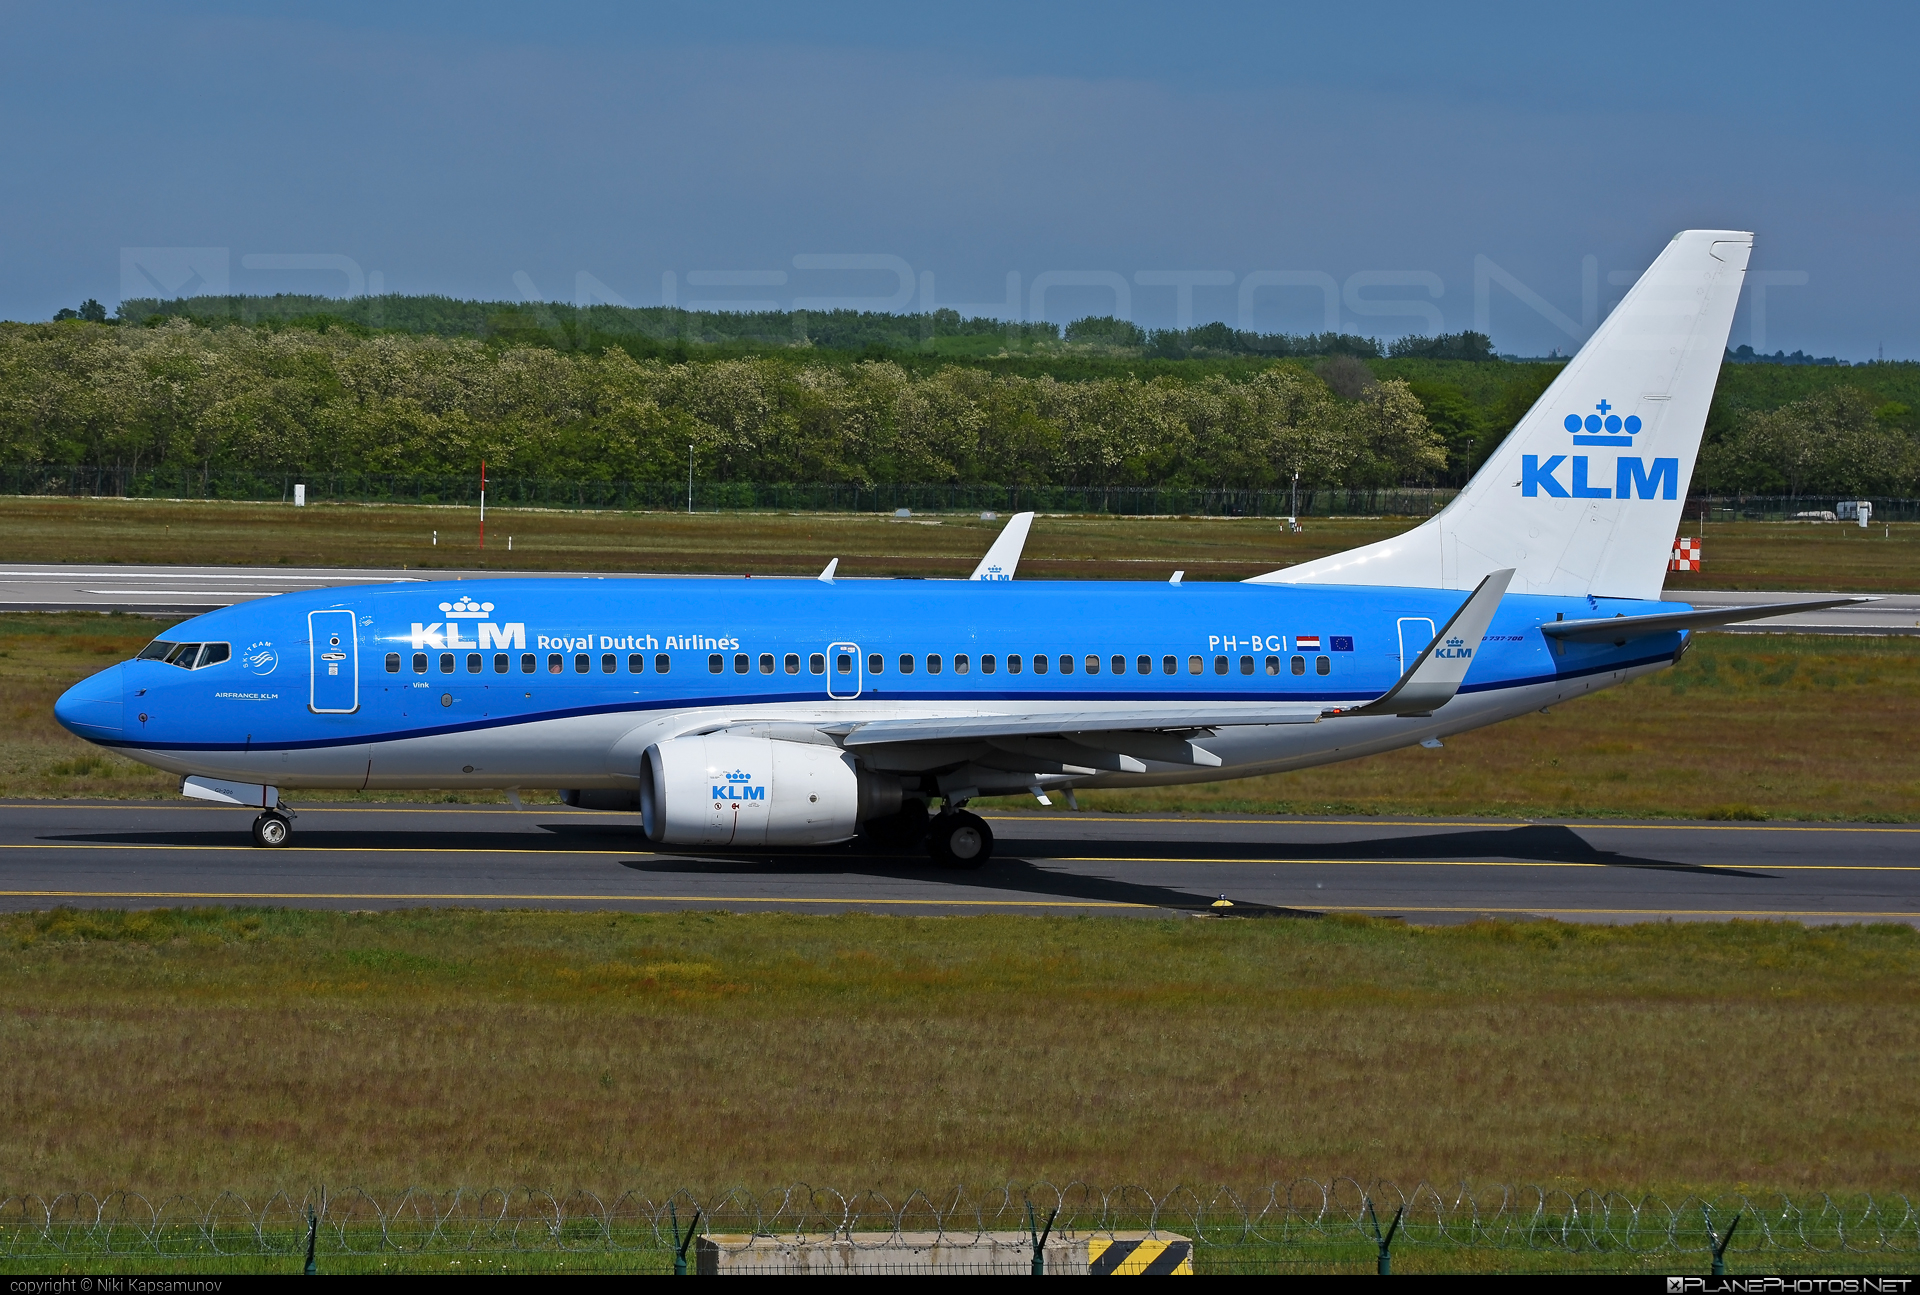 Boeing 737-700 - PH-BGI operated by KLM Royal Dutch Airlines #b737 #b737nextgen #b737ng #boeing #boeing737 #klm #klmroyaldutchairlines #royaldutchairlines